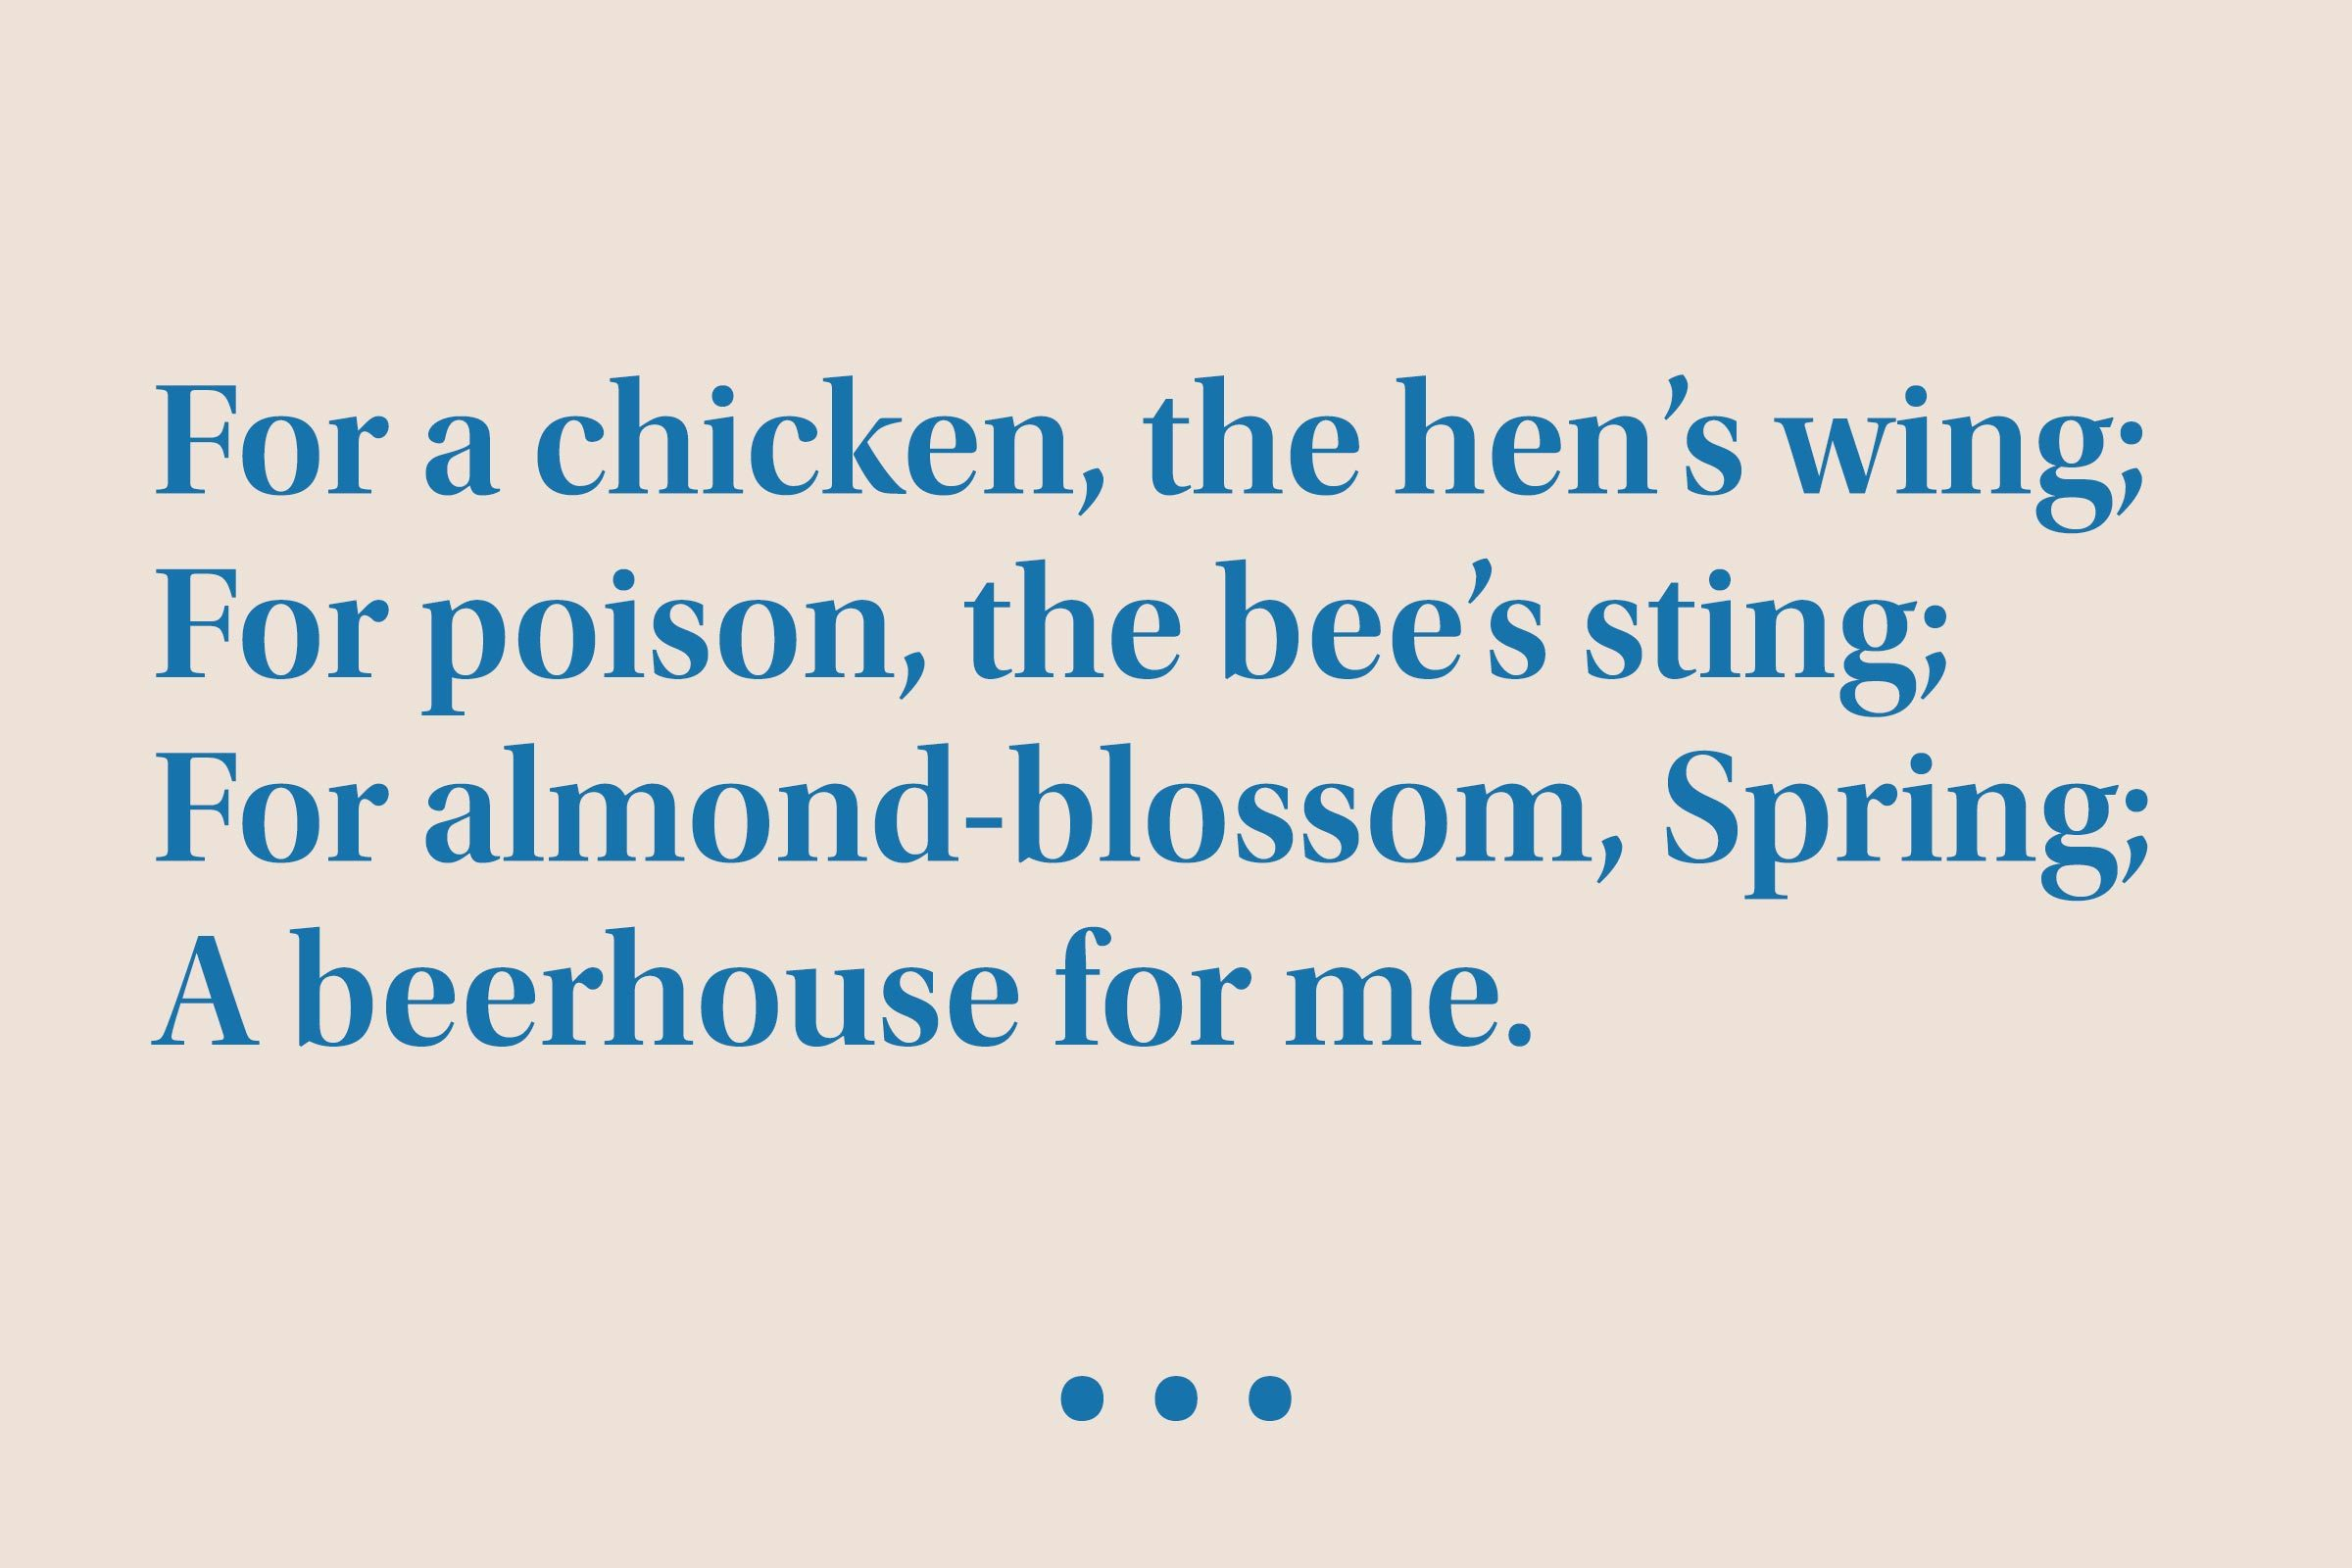 """""""For a chicken, the hen's wing; For poison, the bee's sting; For almond-blossom, Spring; A beerhouse for me."""""""